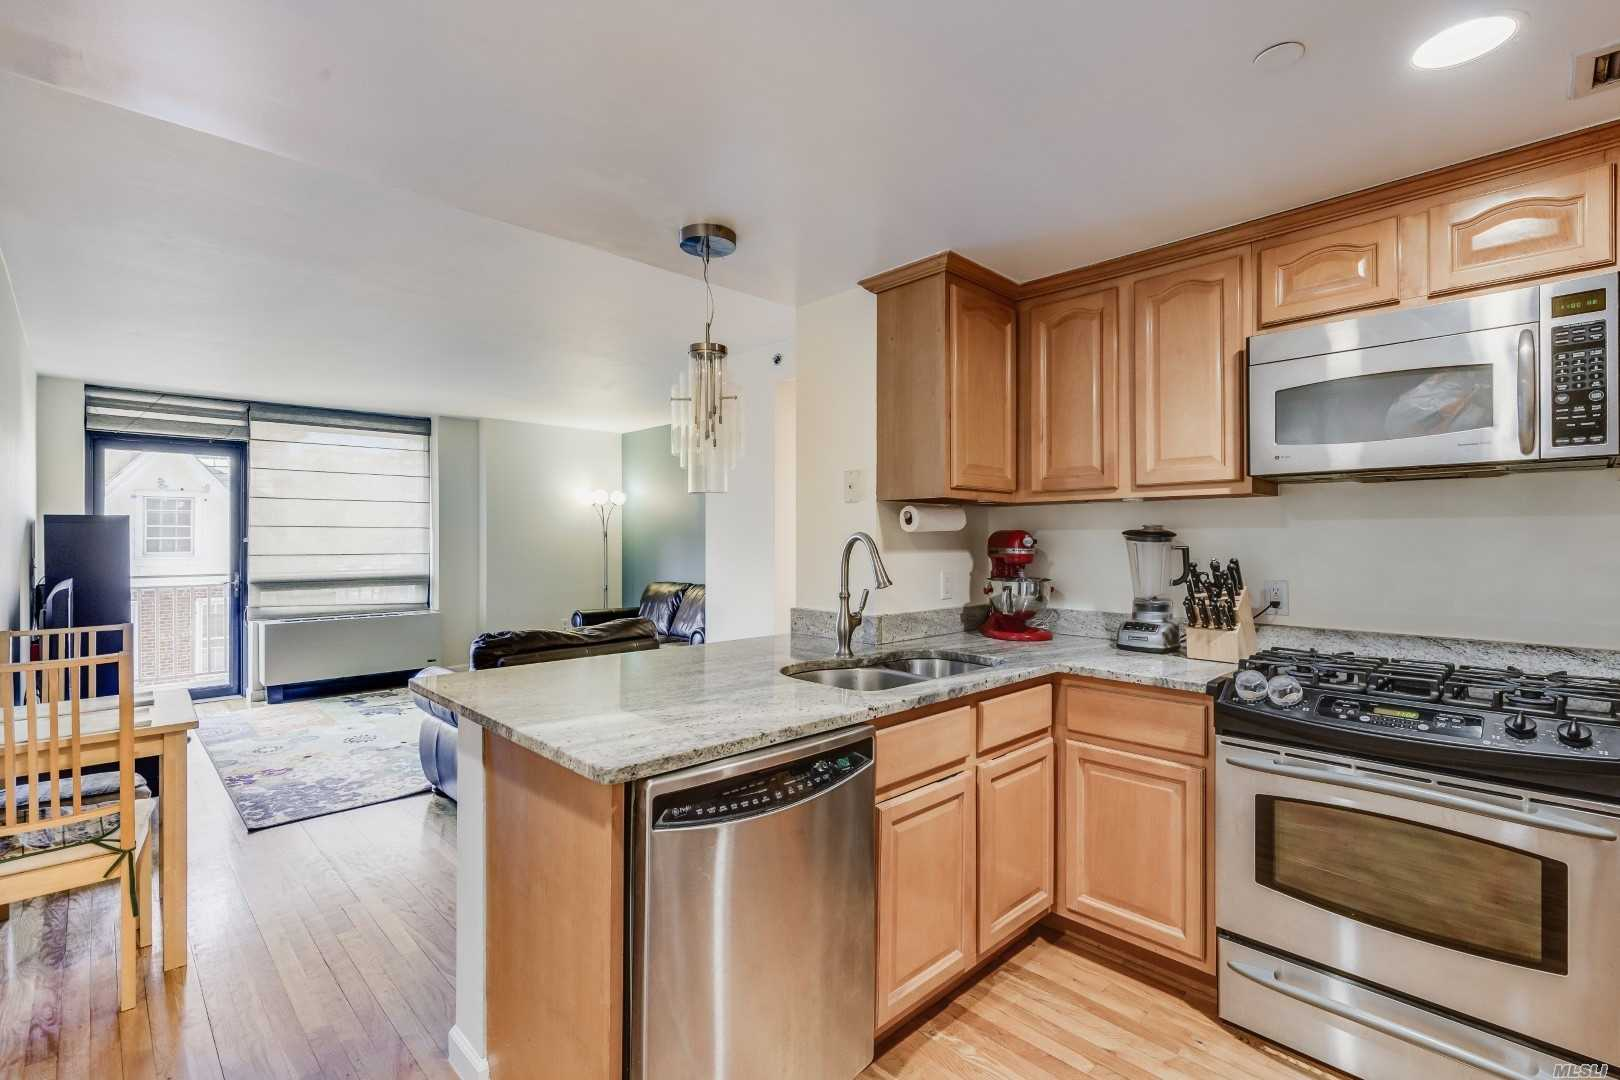 **Motivated Seller**Immaculate 3rd Floor Condo Offers A Private Terrace Of 126 Sqft And A Balcony With 2 Bedroom , 1 Large Bathroom, Granite Kitchen W/Breakfast Bar, Large Lr/Dr Combo, Hardwood Floors Throughout. Building Offers Laundry, Door Man, Gym, Event Room & An Outdoor Rooftop Deck W/Garden Area On 3rd Floor. Steps Away From Dining, Shopping, Entertainment, Buses Q57, Q54, Forest Park & Transportation Lirr And J, Z, M, R, E, F Trains. Commuters Dream!